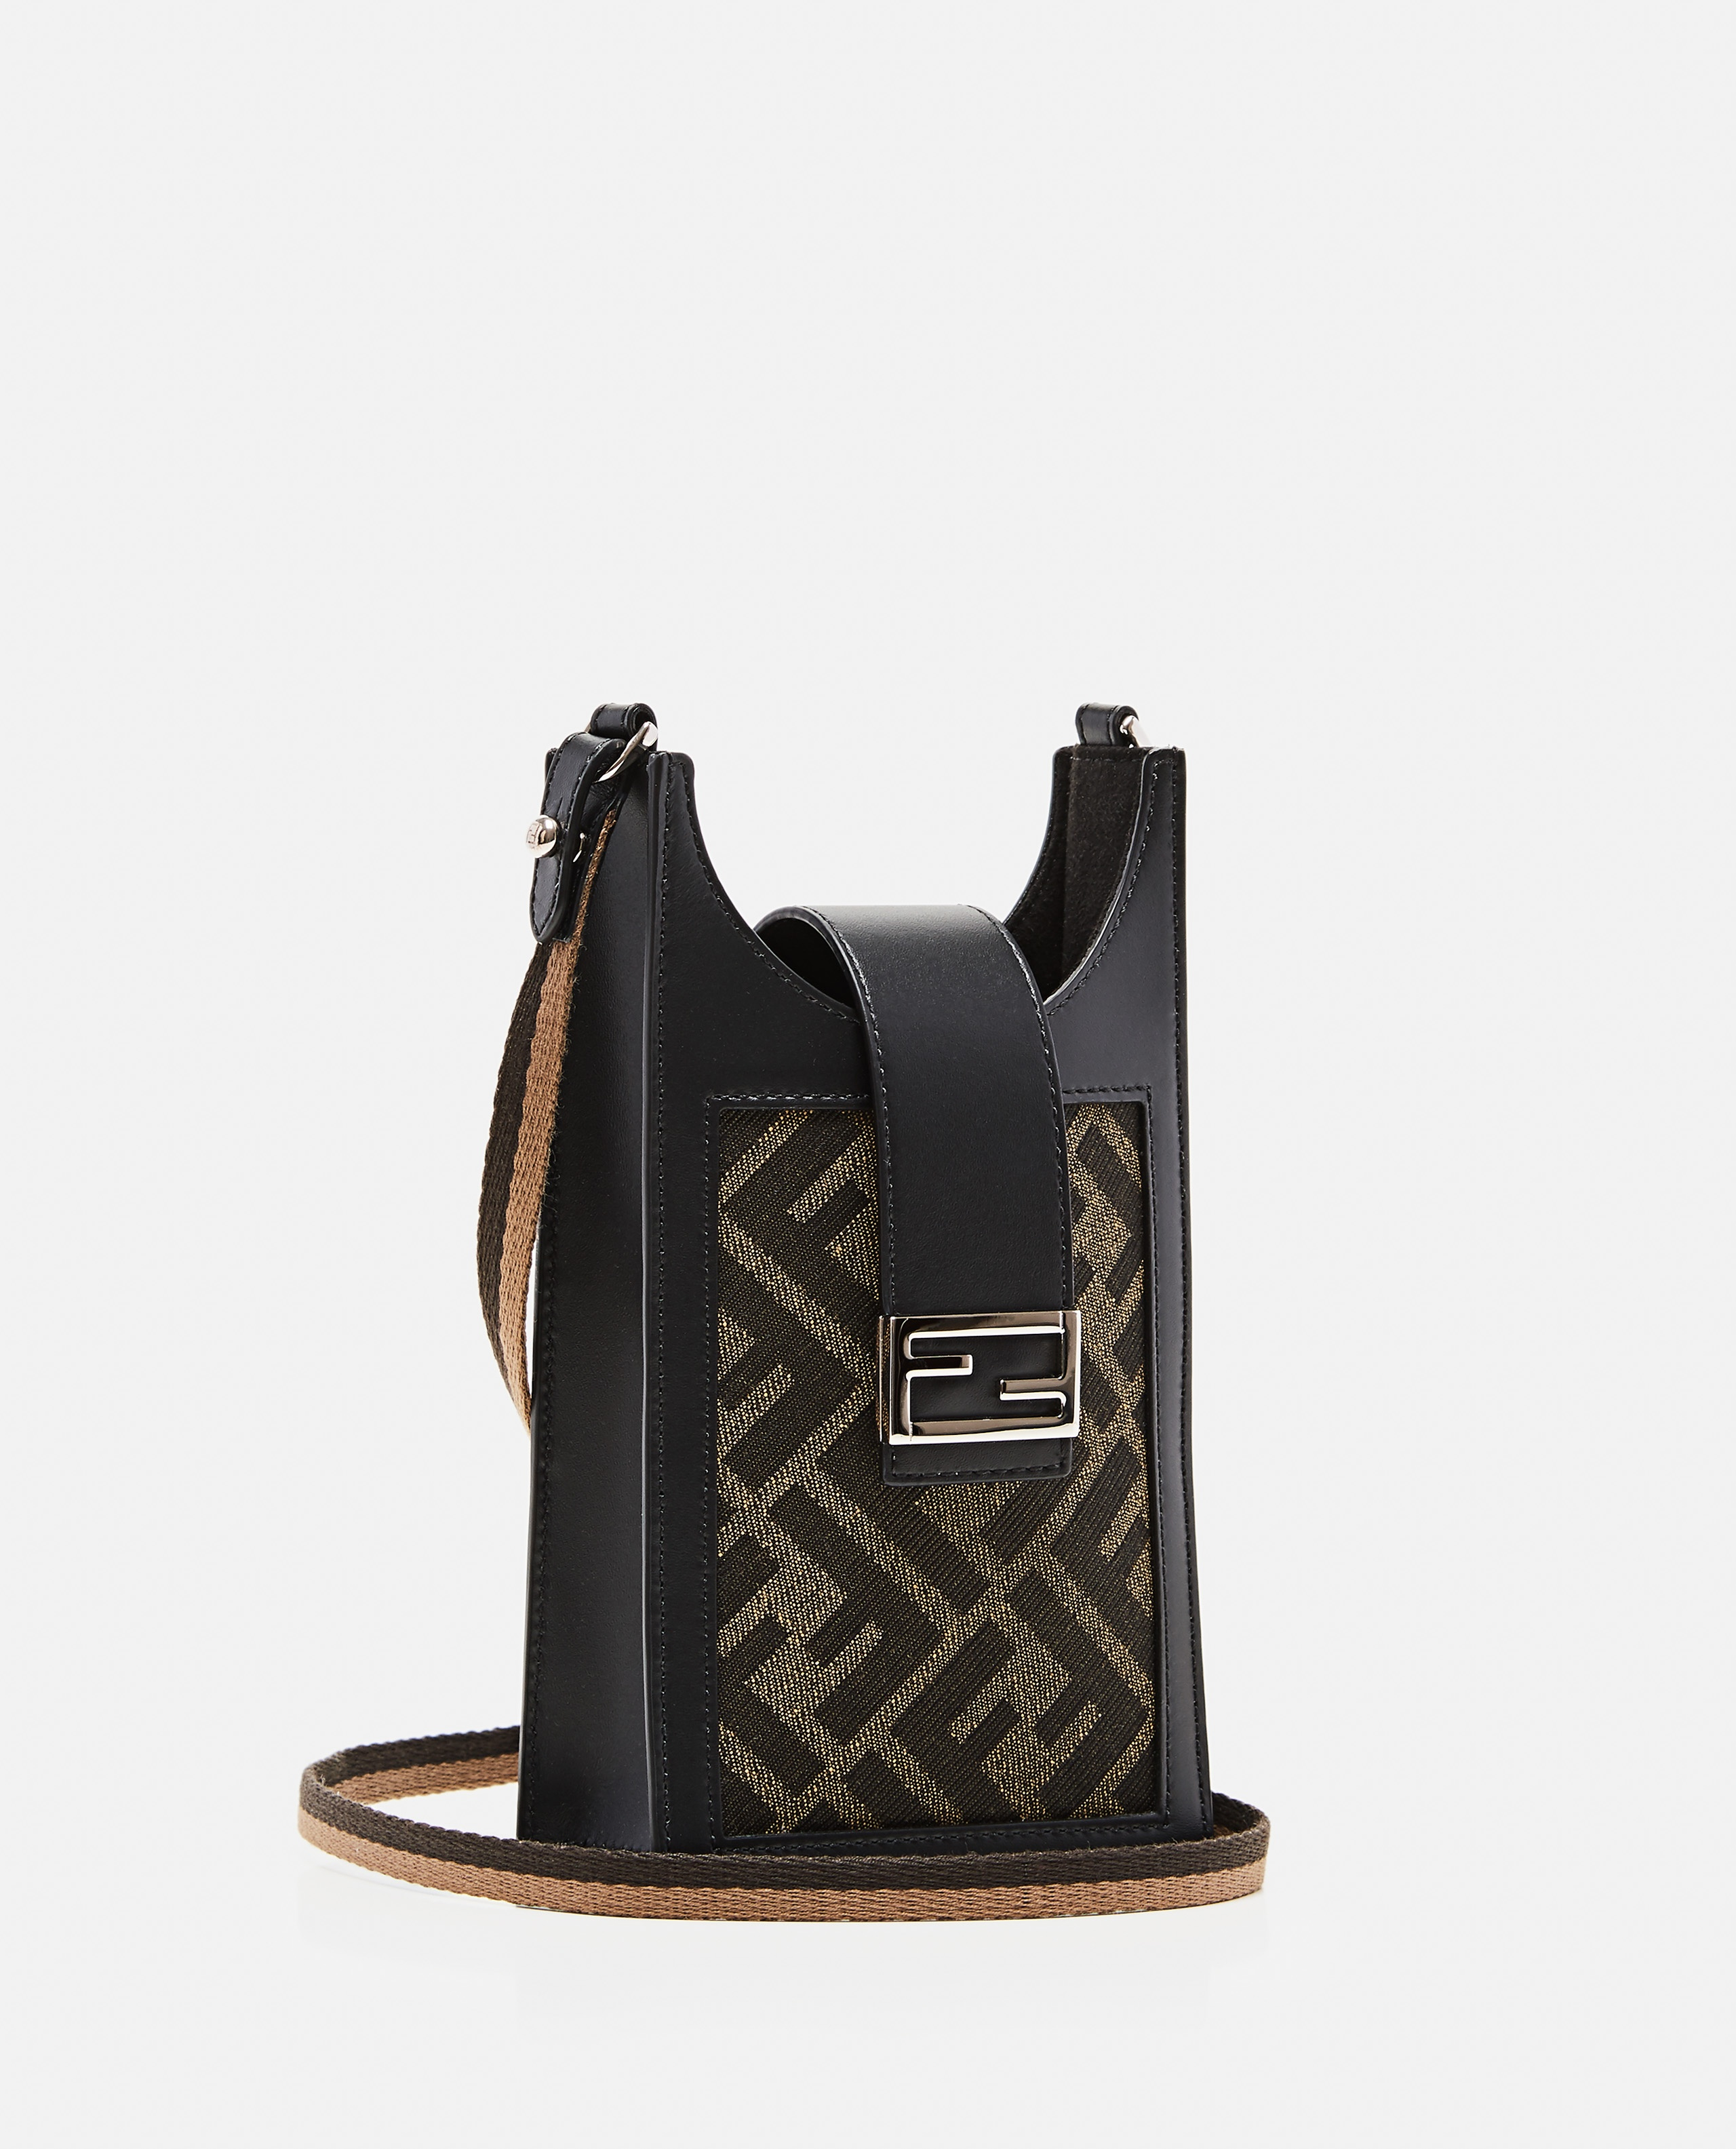 Cell phone holder in brown fabric Uomo Fendi 000310470045523 2